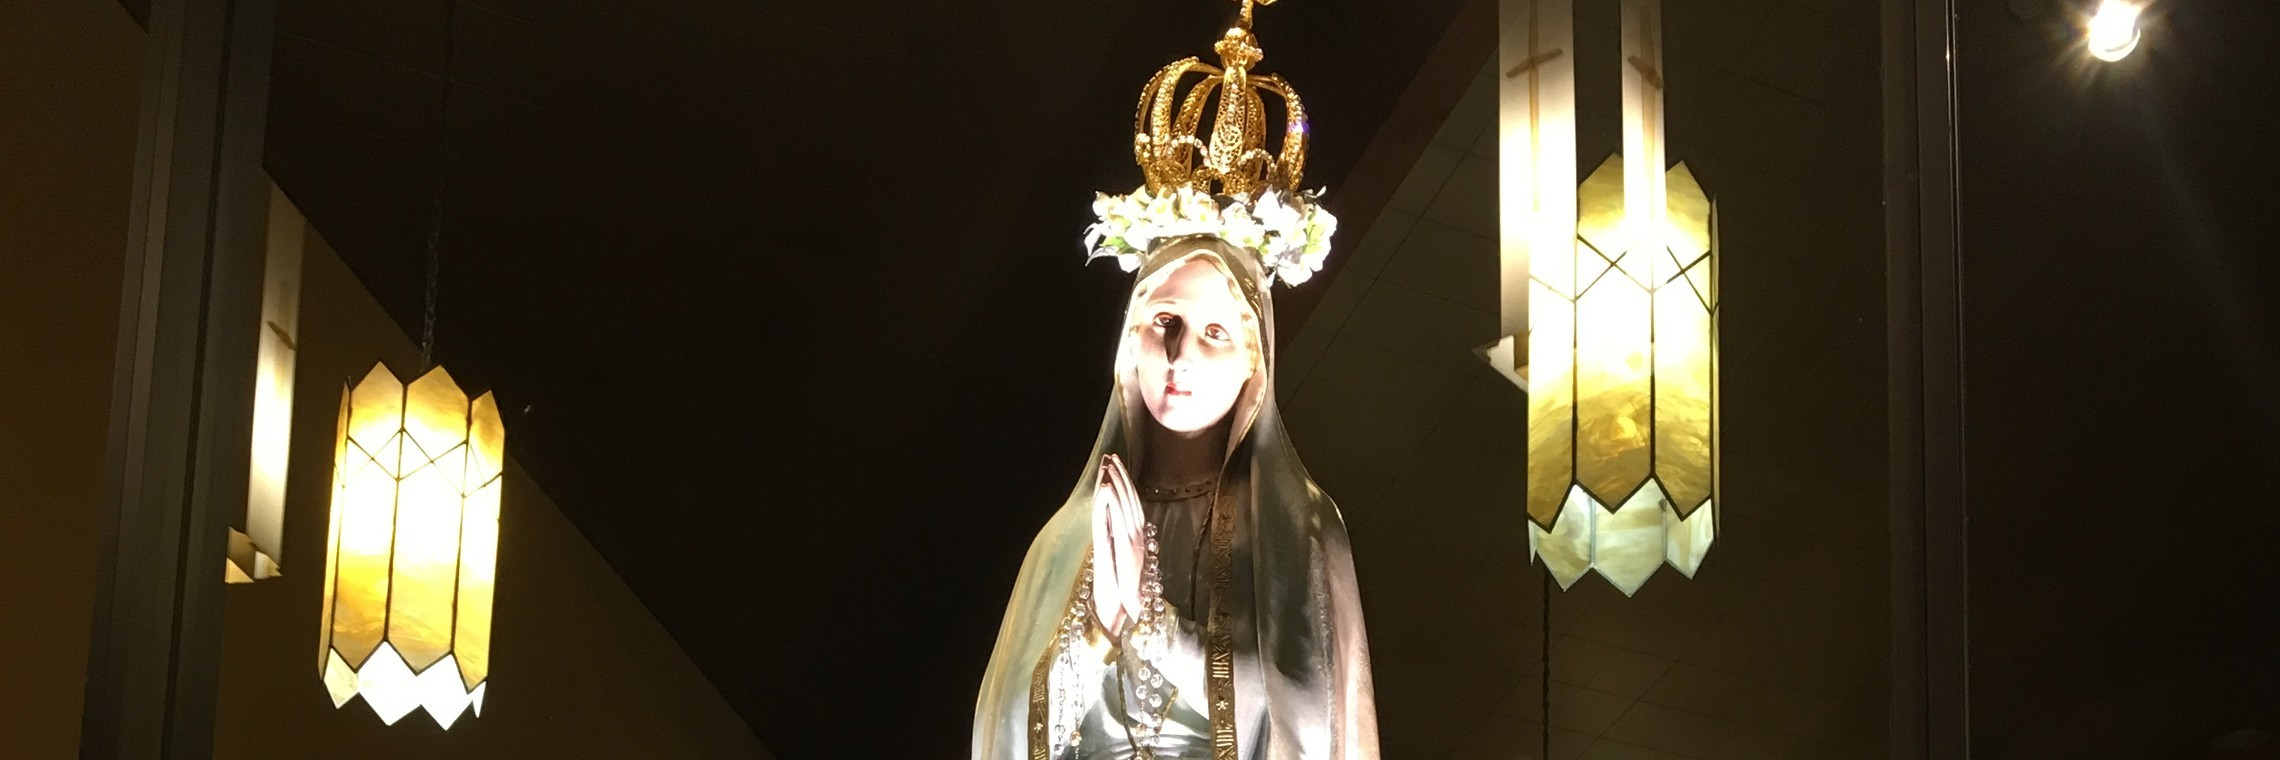 Our Lady of Fatima 2016